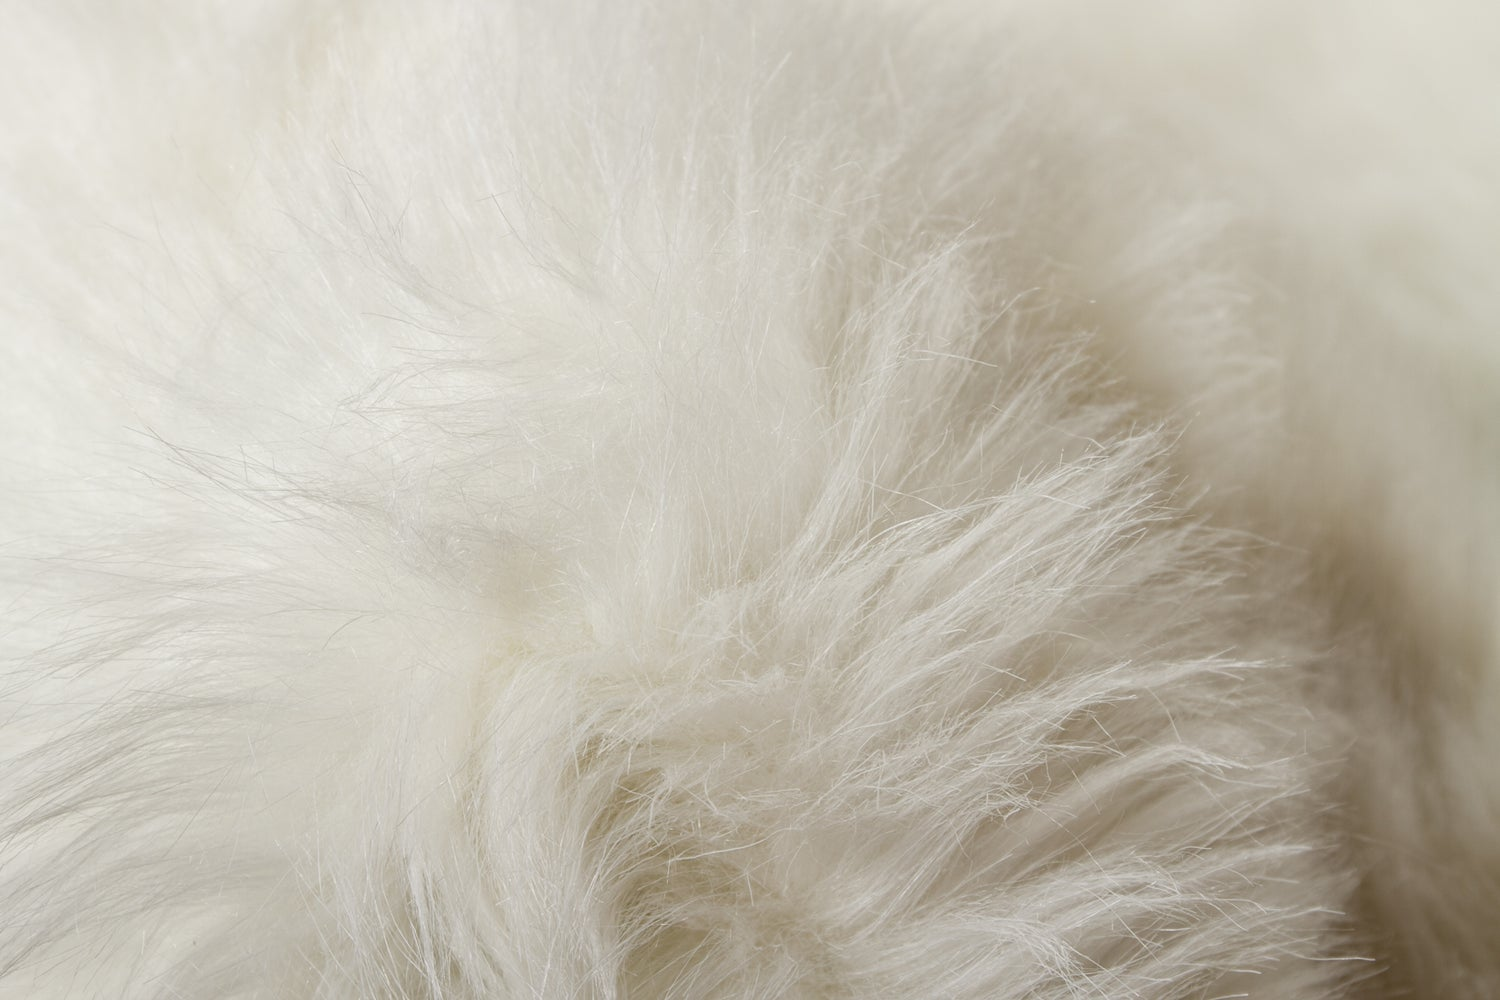 Image of 676685040978 ROYALE GORDON FAUX SHEEPSKIN FUR RUG DOUBLE  2' X 6'  OFF WHITE